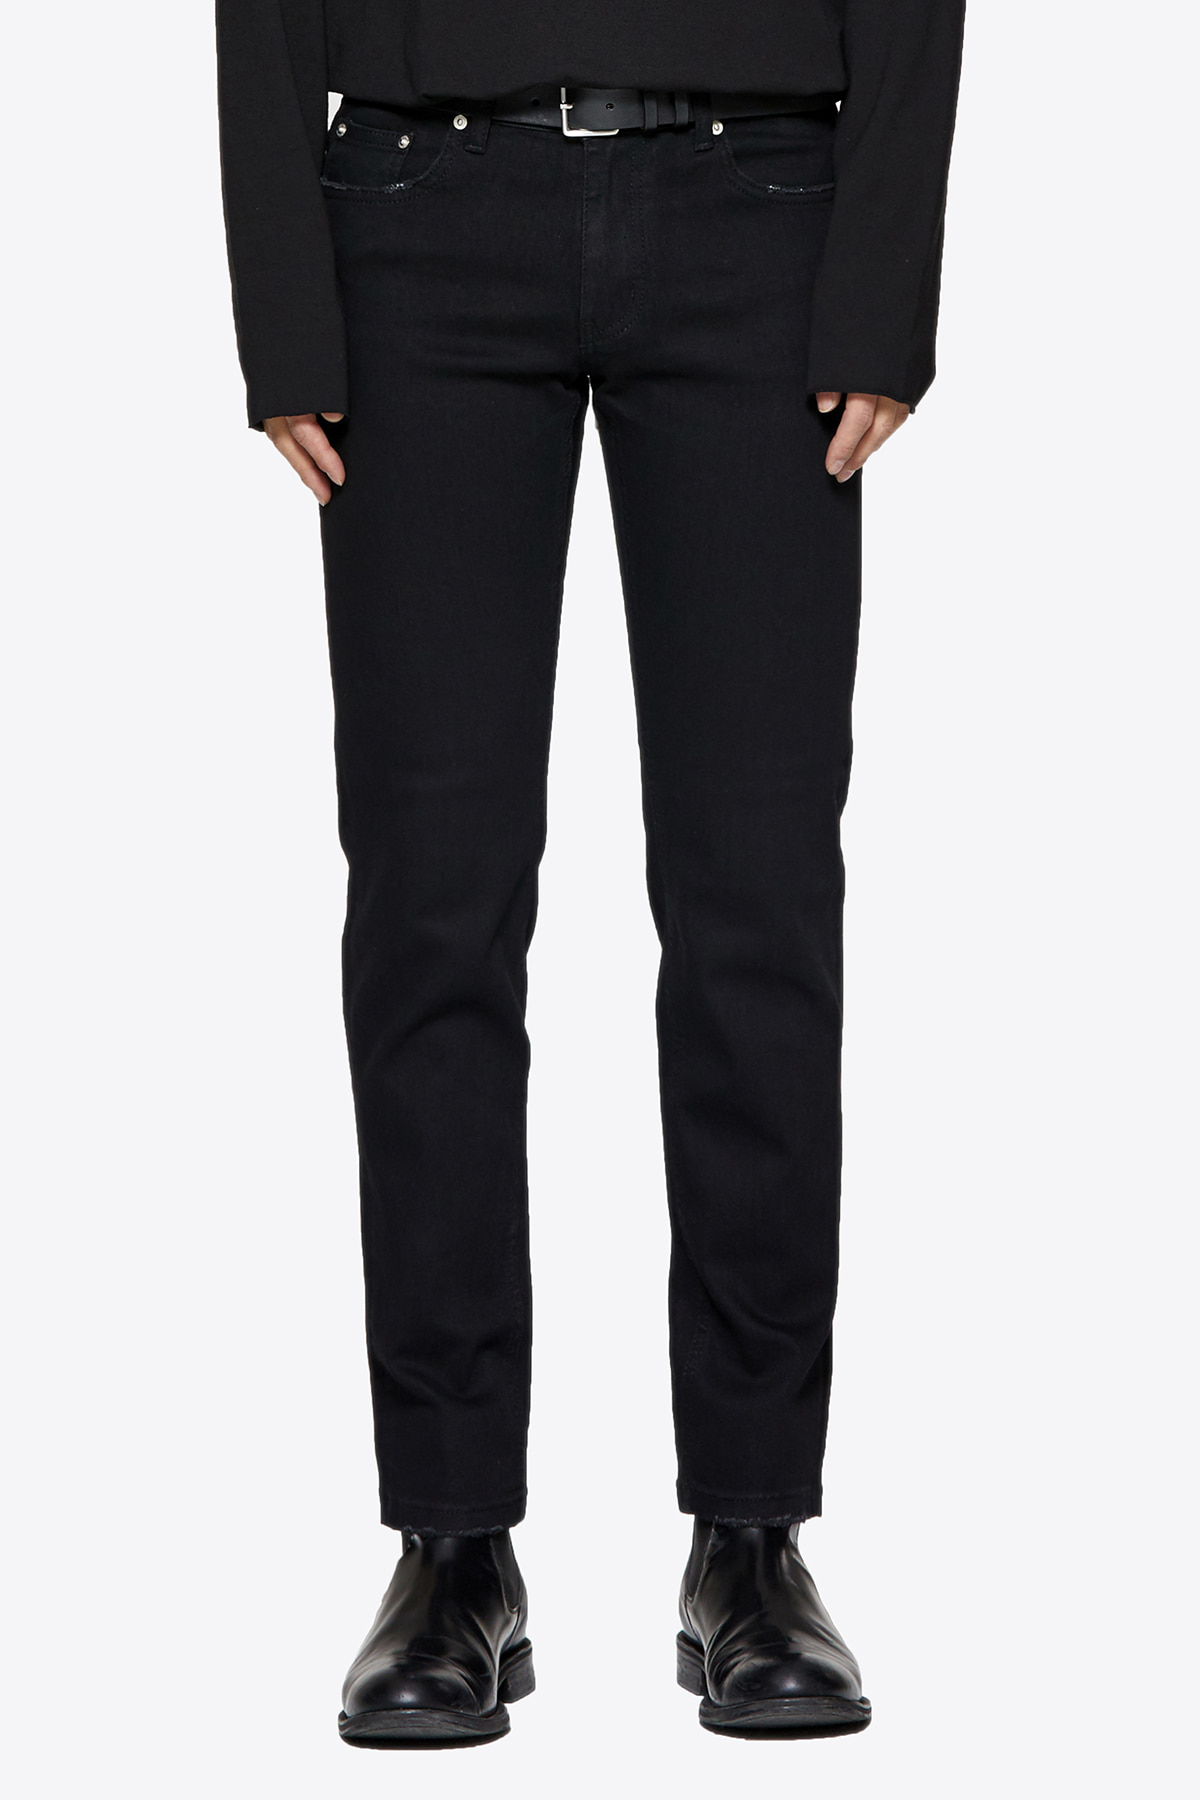 페이탈리즘 #0082 black normal crop jeans